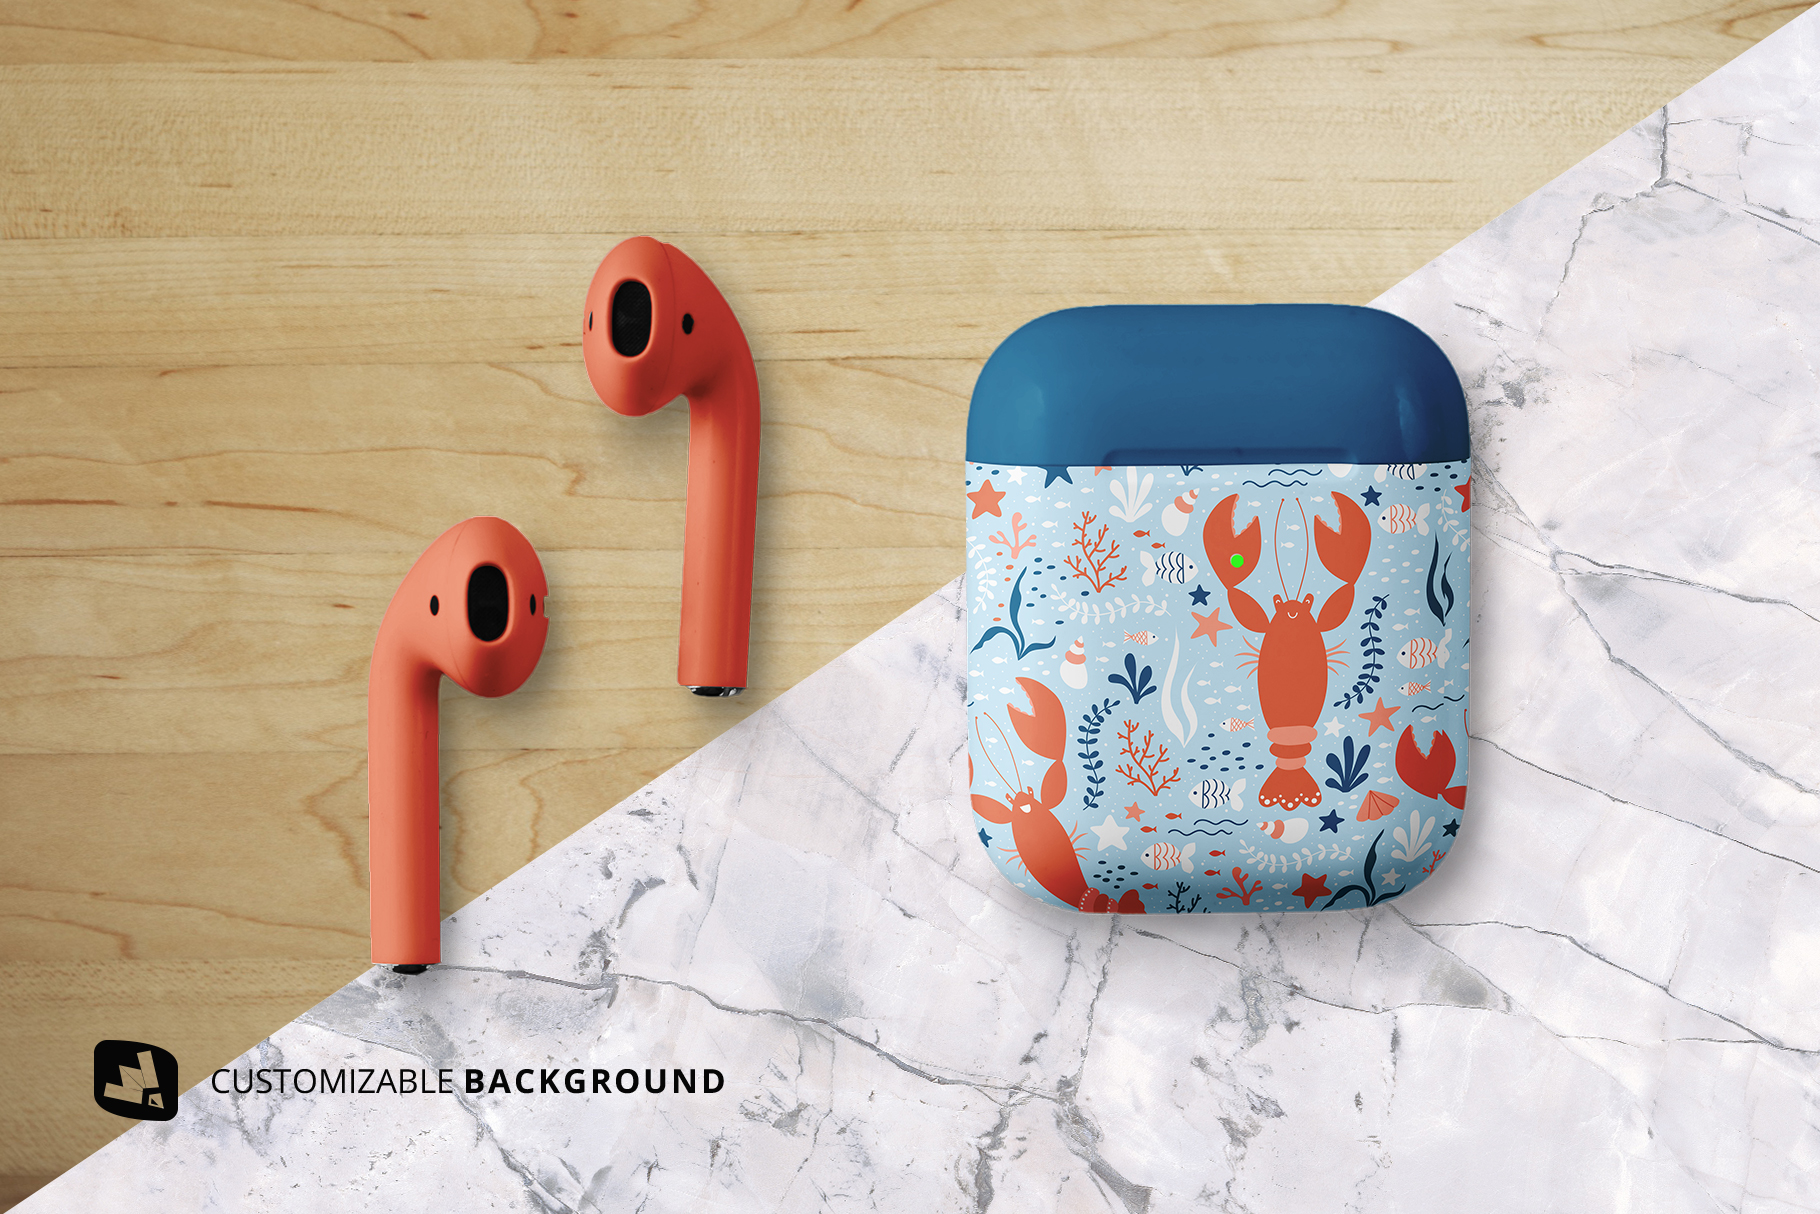 background options of the top view airpod case mockup